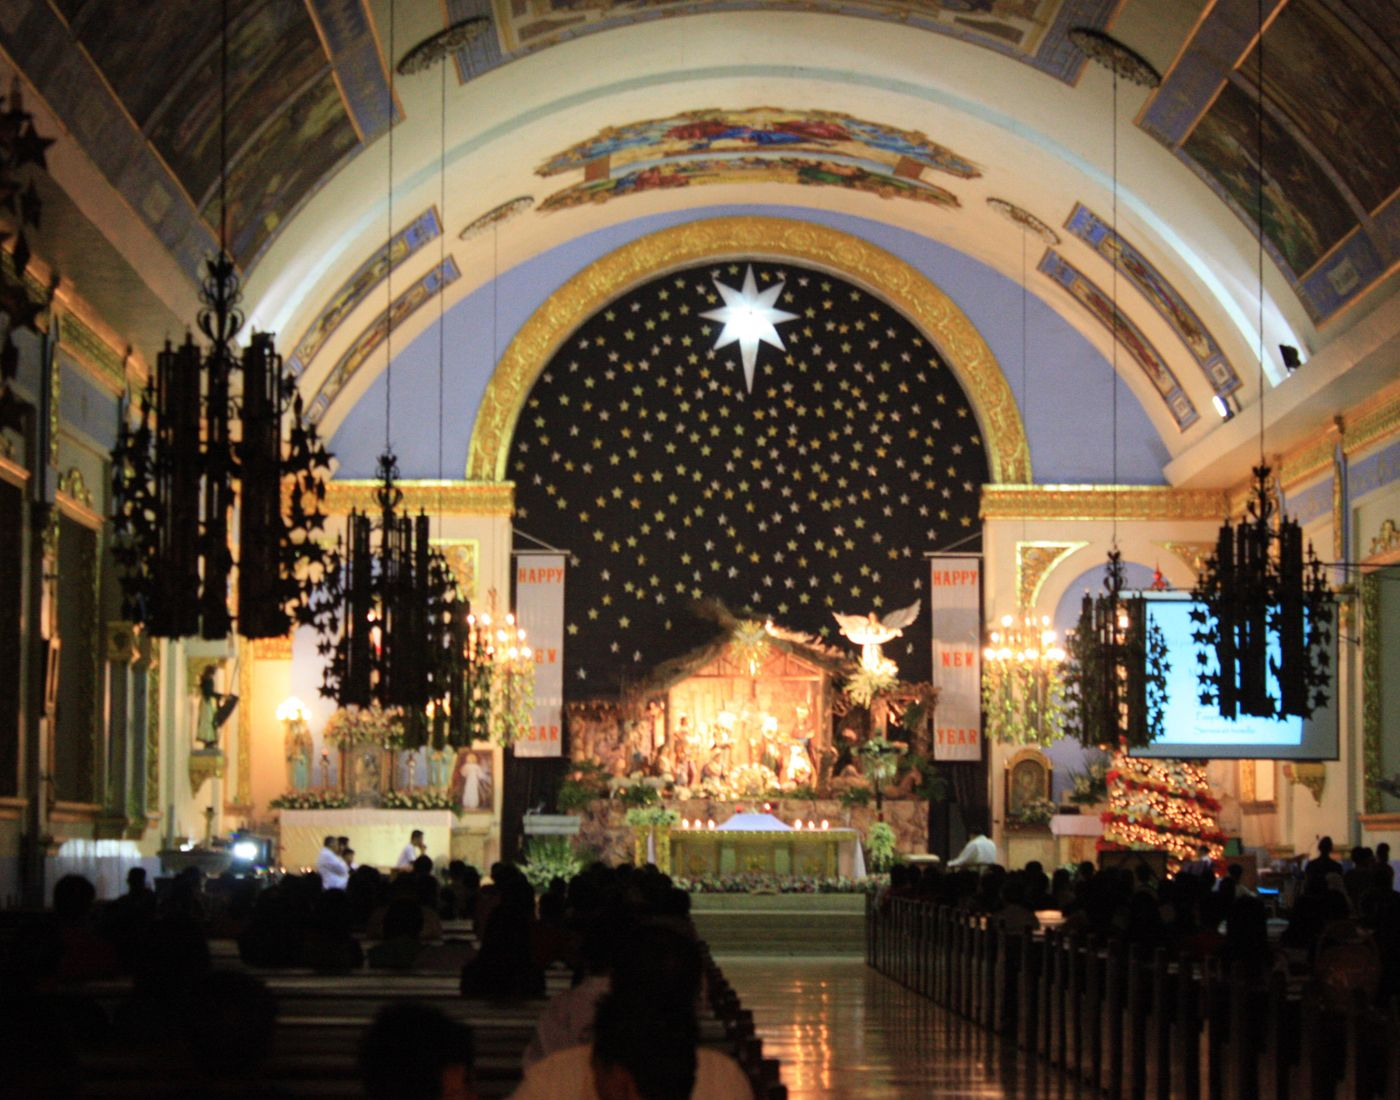 Christmas eve worship service ideas - Christmas Decor Church 09 1 Churches Christmas Decor And Church Ideas